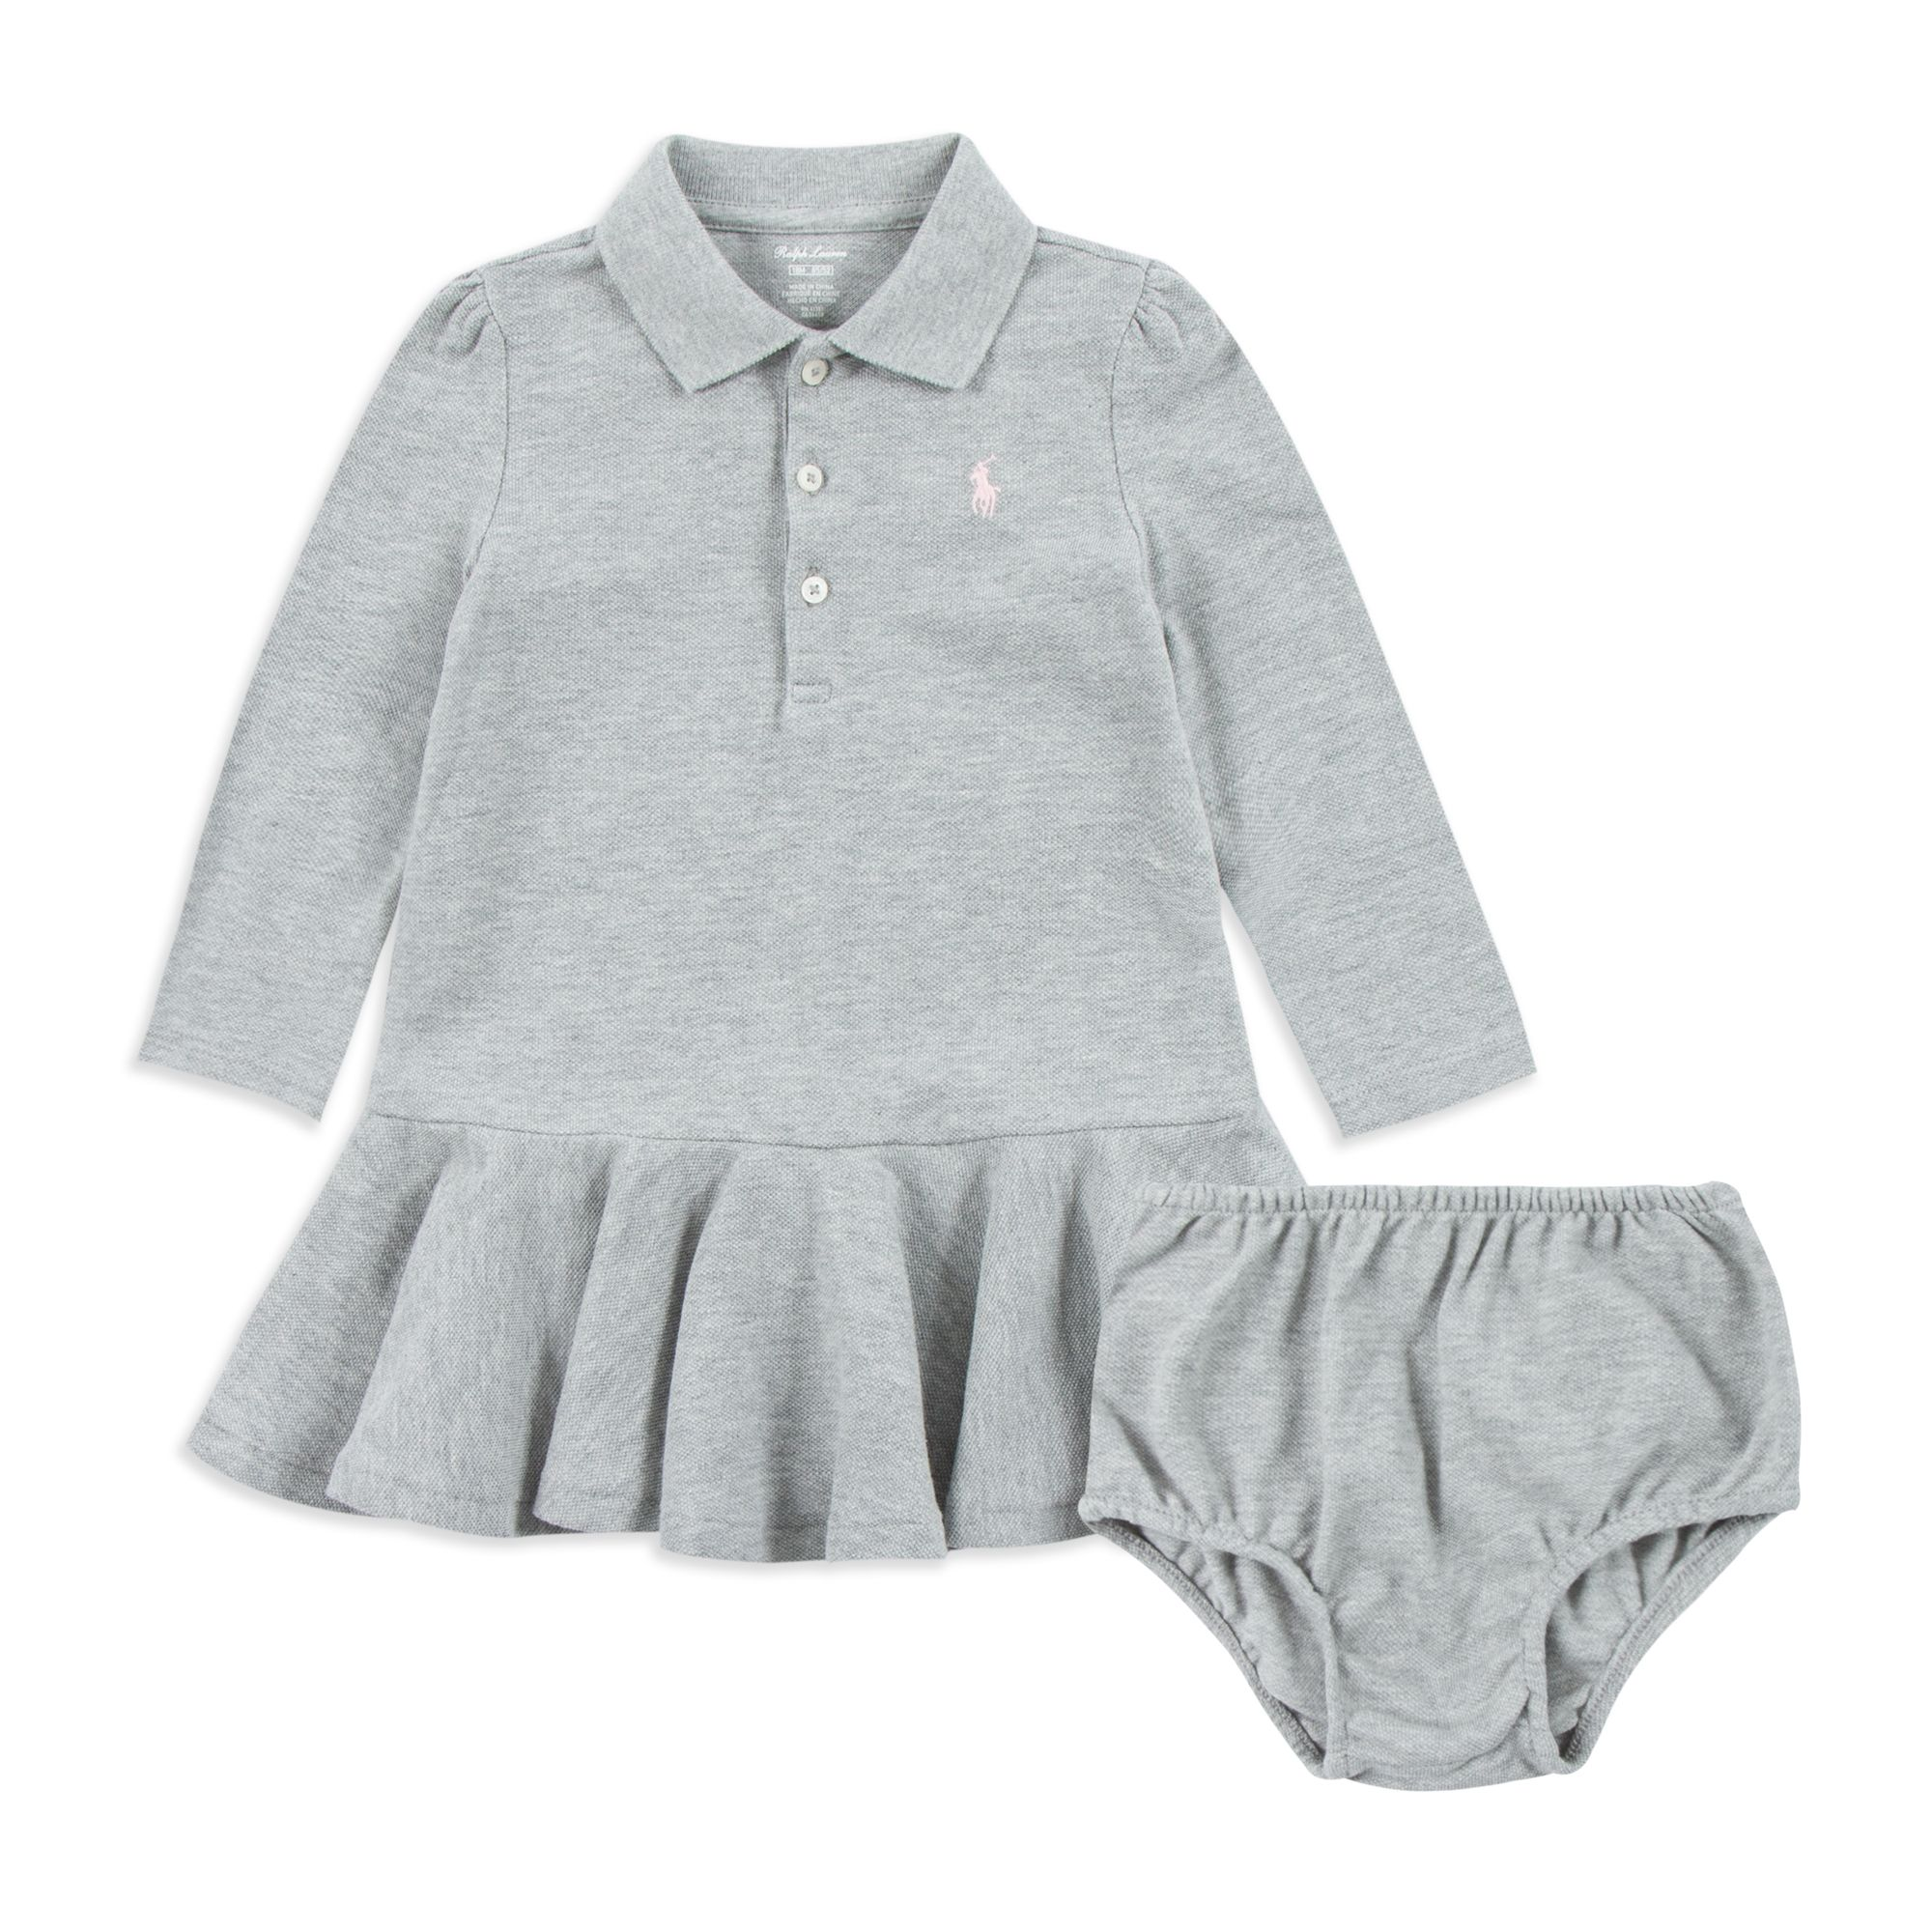 Baby Polo Dress by Ralph Lauren Baby Dresses